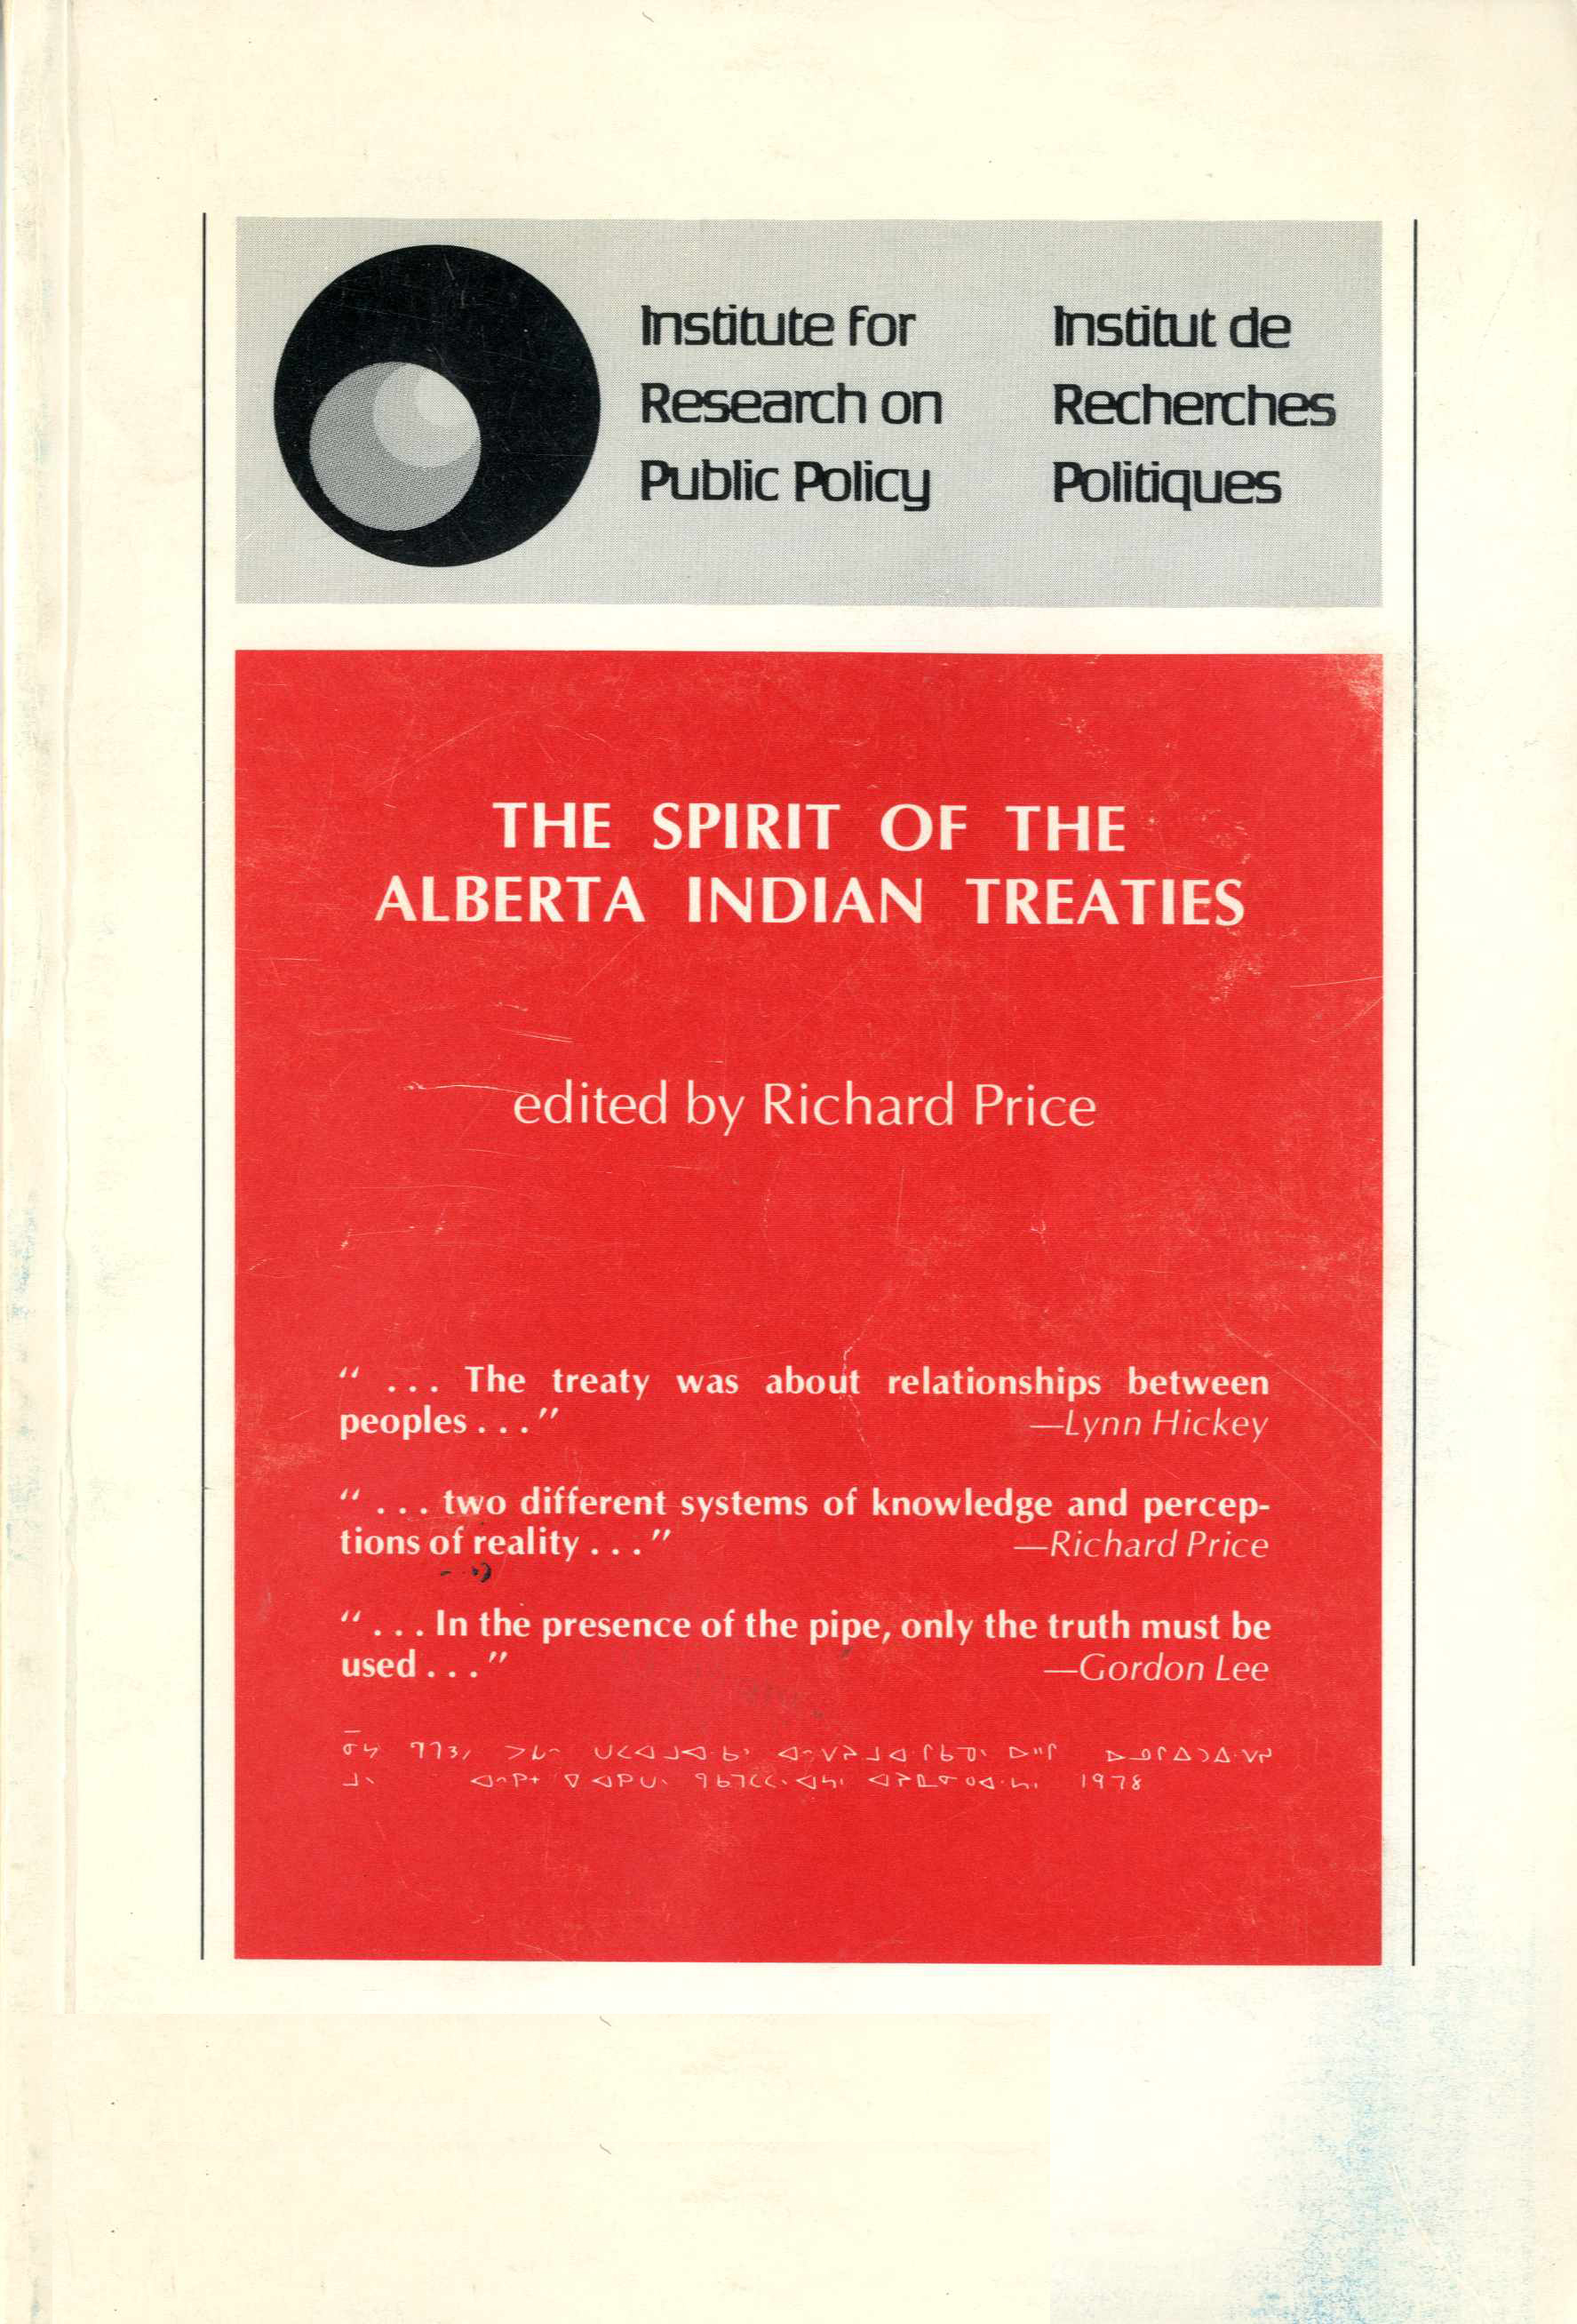 The Spirit of the Alberta Indian Treaties Image